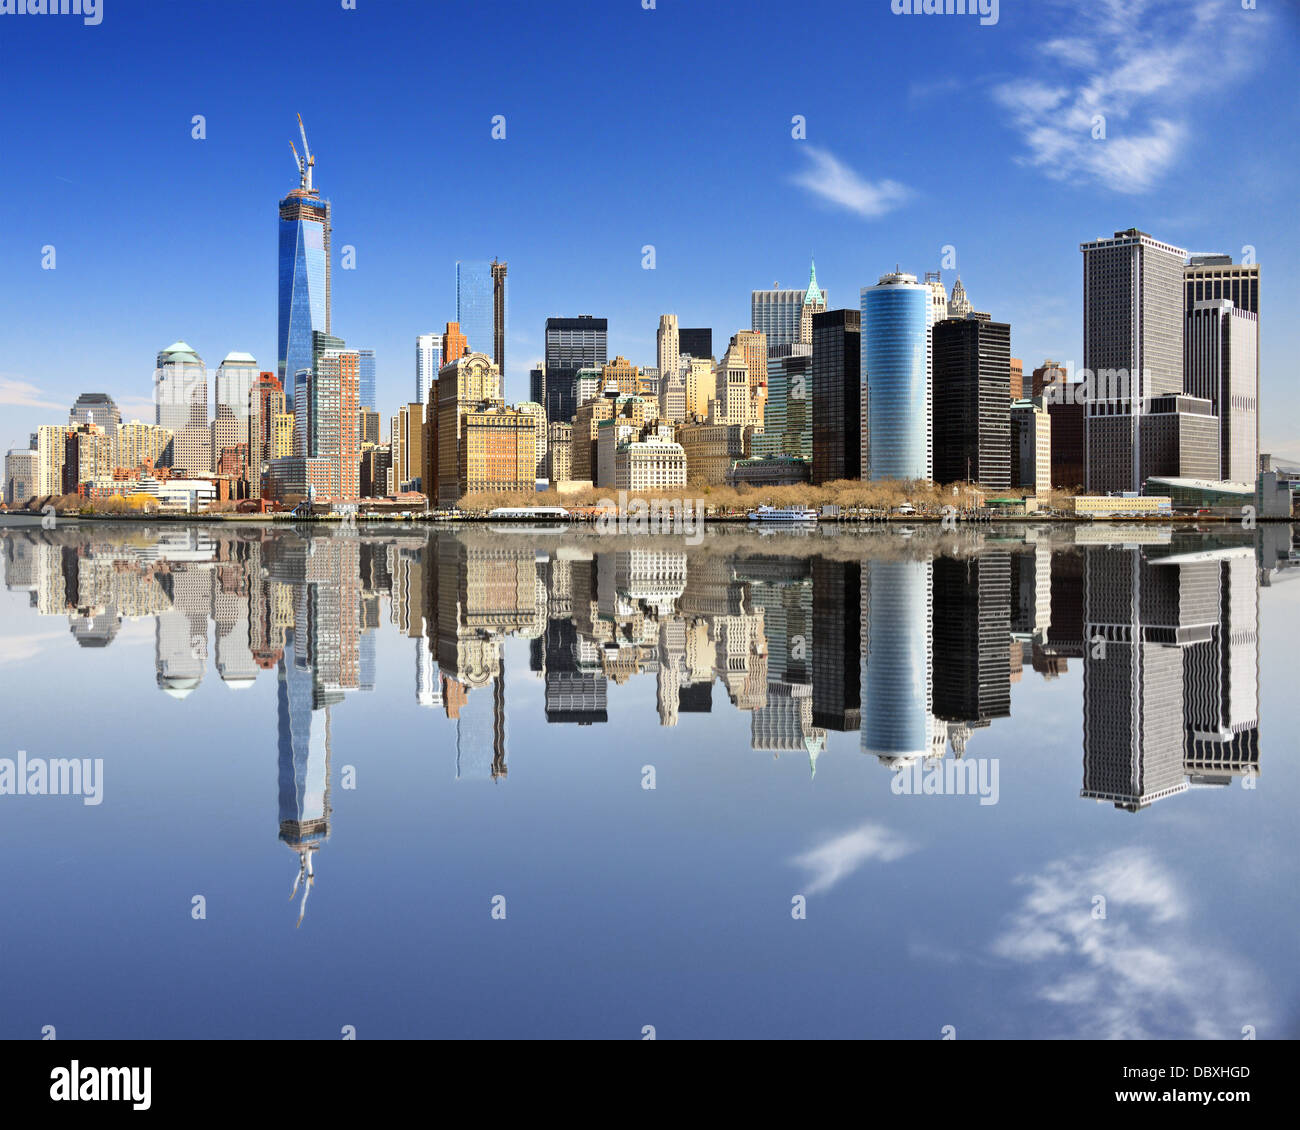 New York City at Lower Manhattan with reflections. - Stock Image